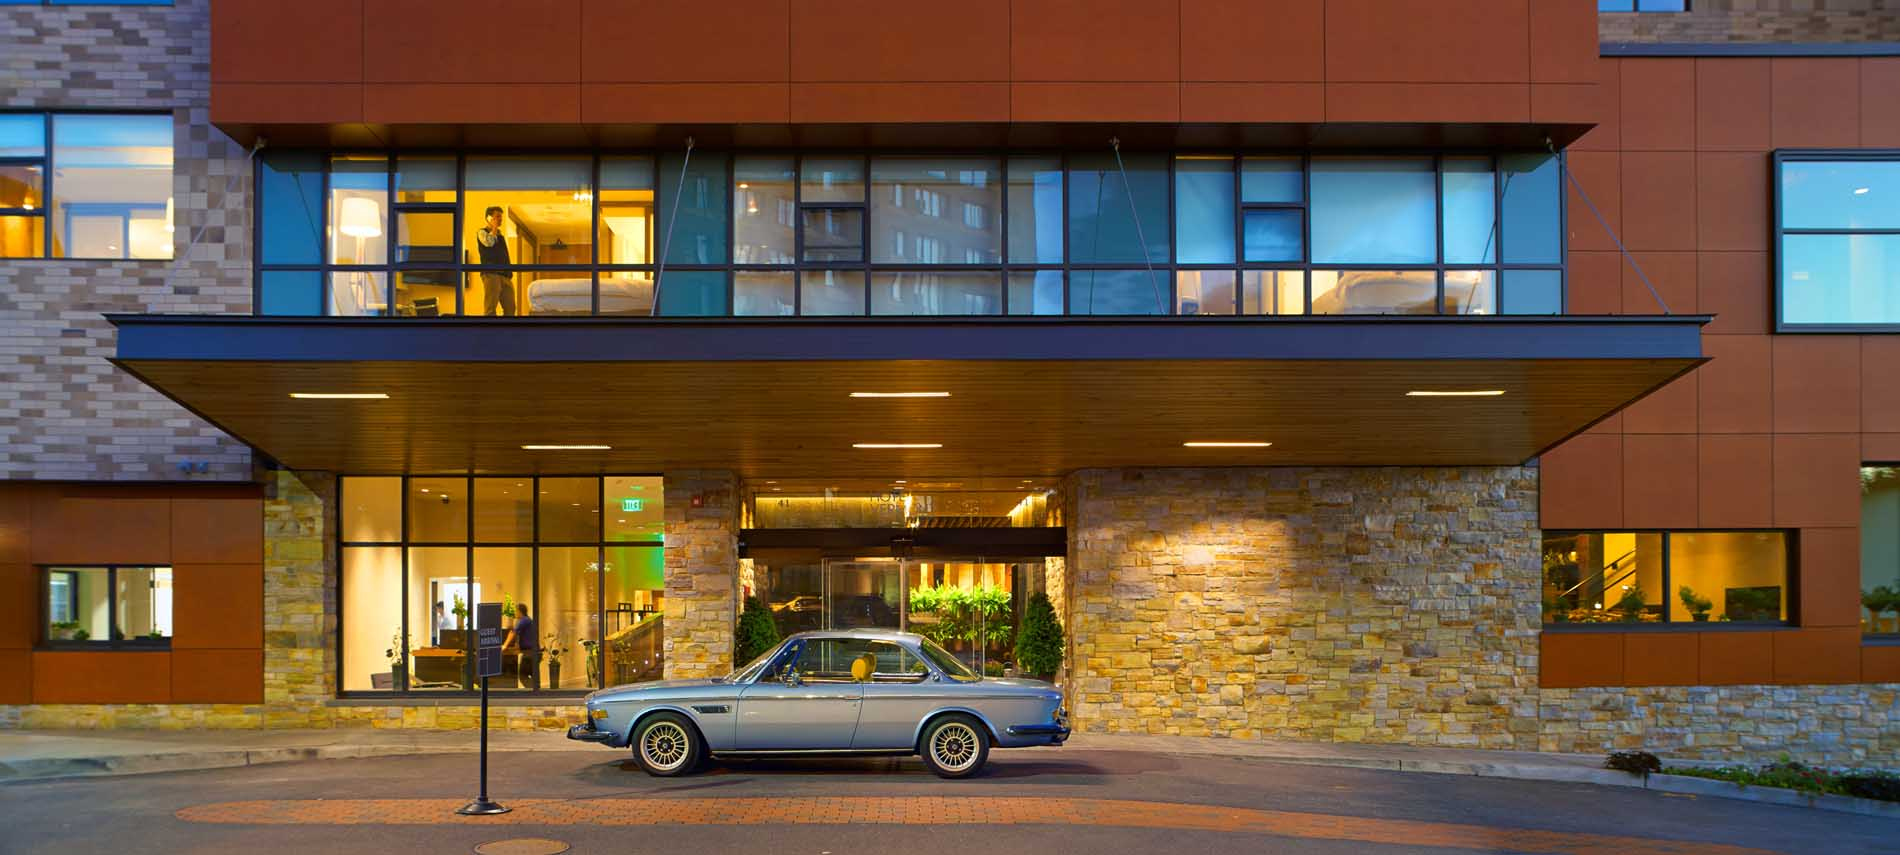 hotel vermont at dusk car parked at entrance